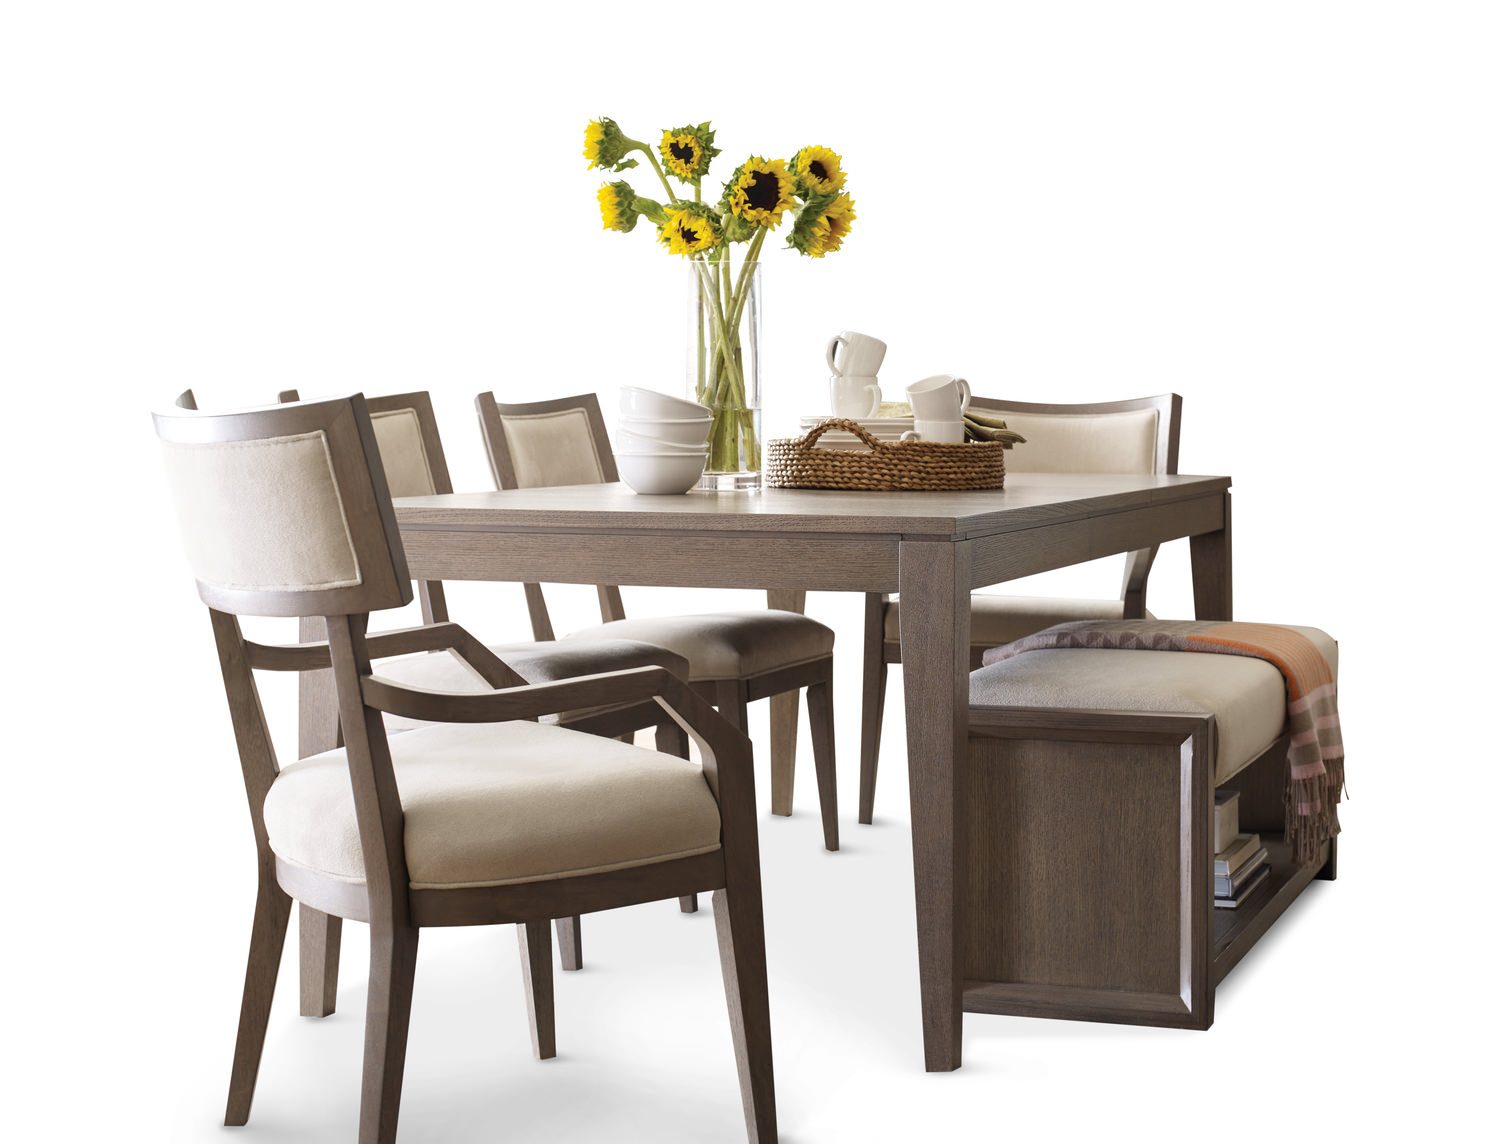 highline leg table with 4 klismo dining chairs 2 klismo arm chairs and bench by rachael ray. Black Bedroom Furniture Sets. Home Design Ideas